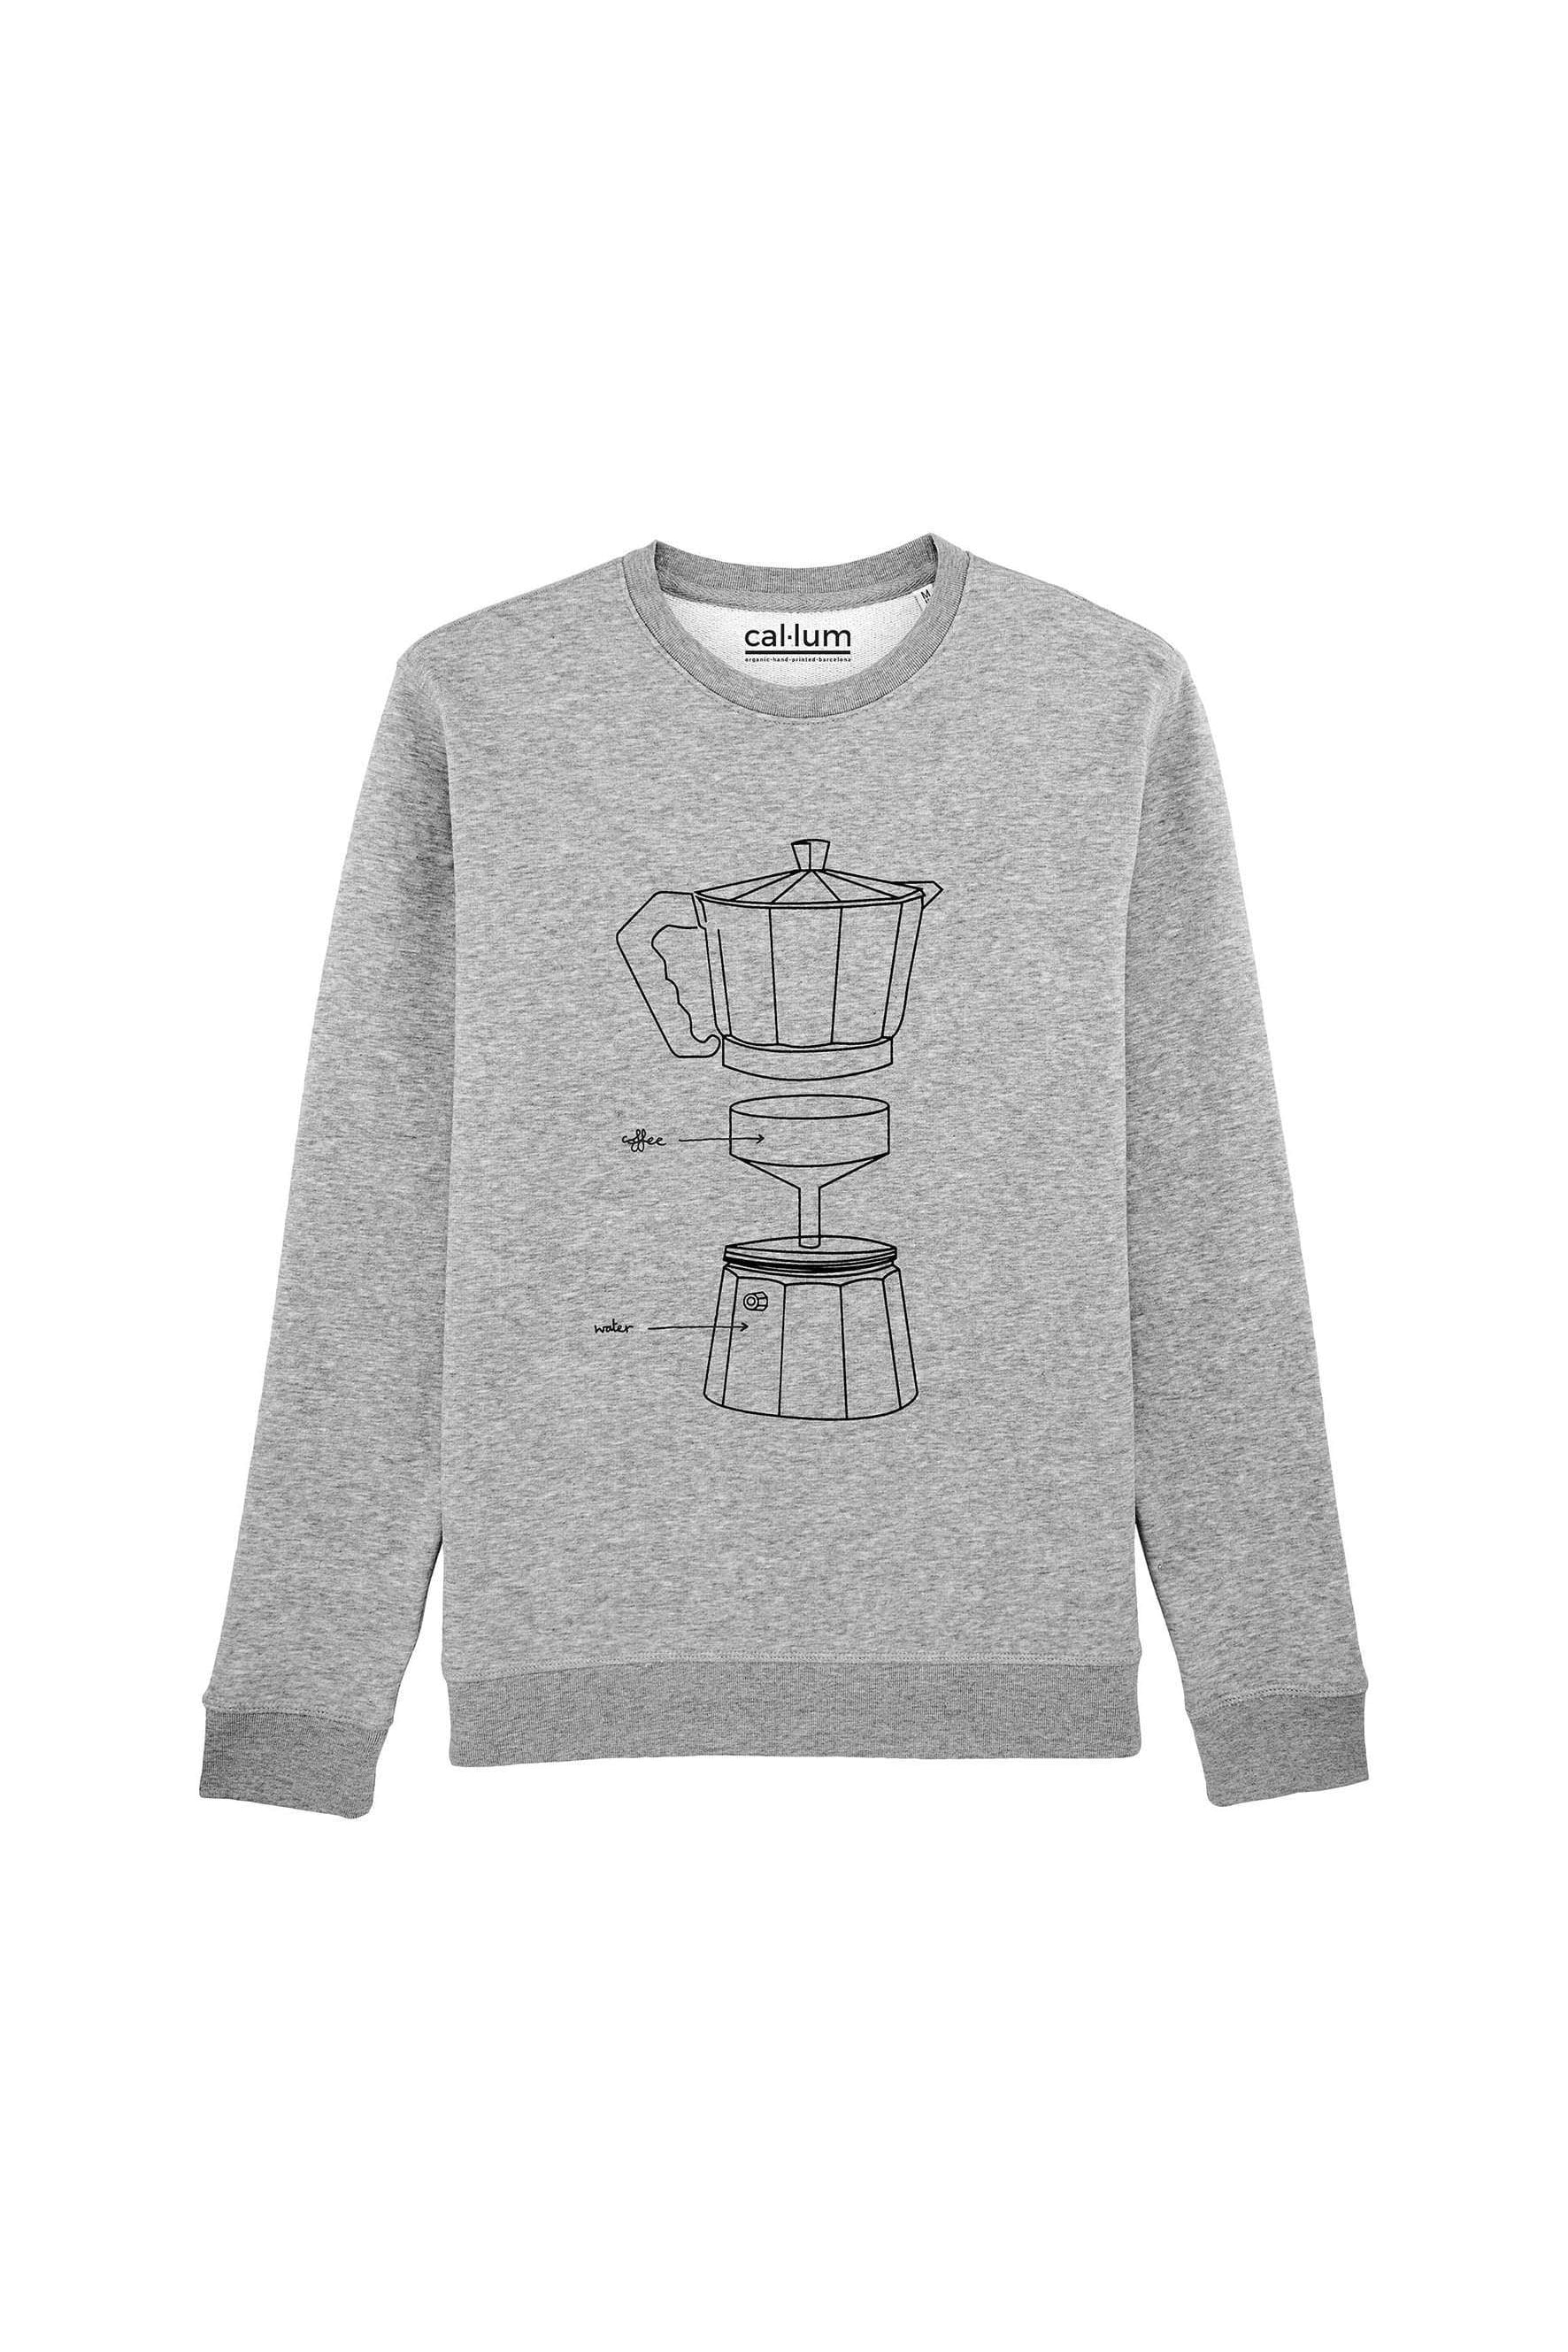 CAL-LUM sweatshirts · sudaderas coffee maker sweatshirt sustainable fashion ethical fashion